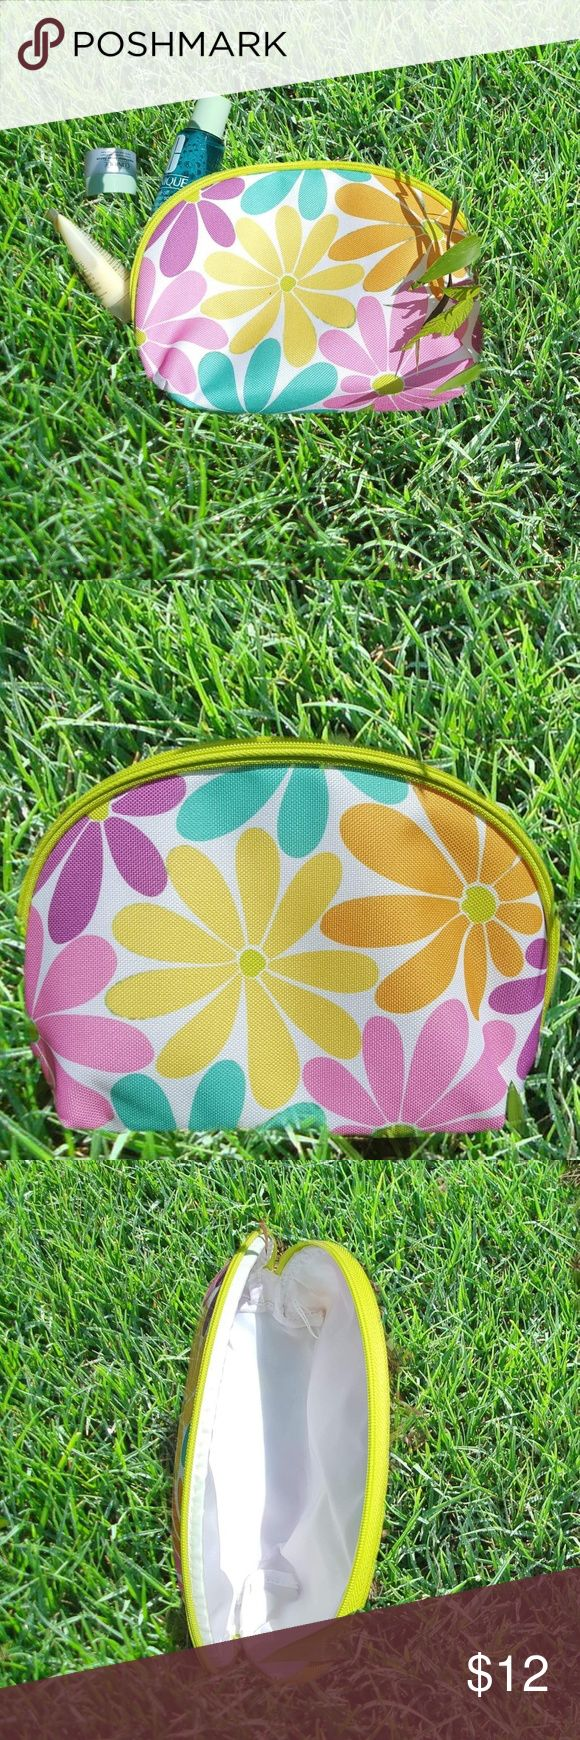 NWOT Clinique cosmetic bag Funky and fun! Cute retro